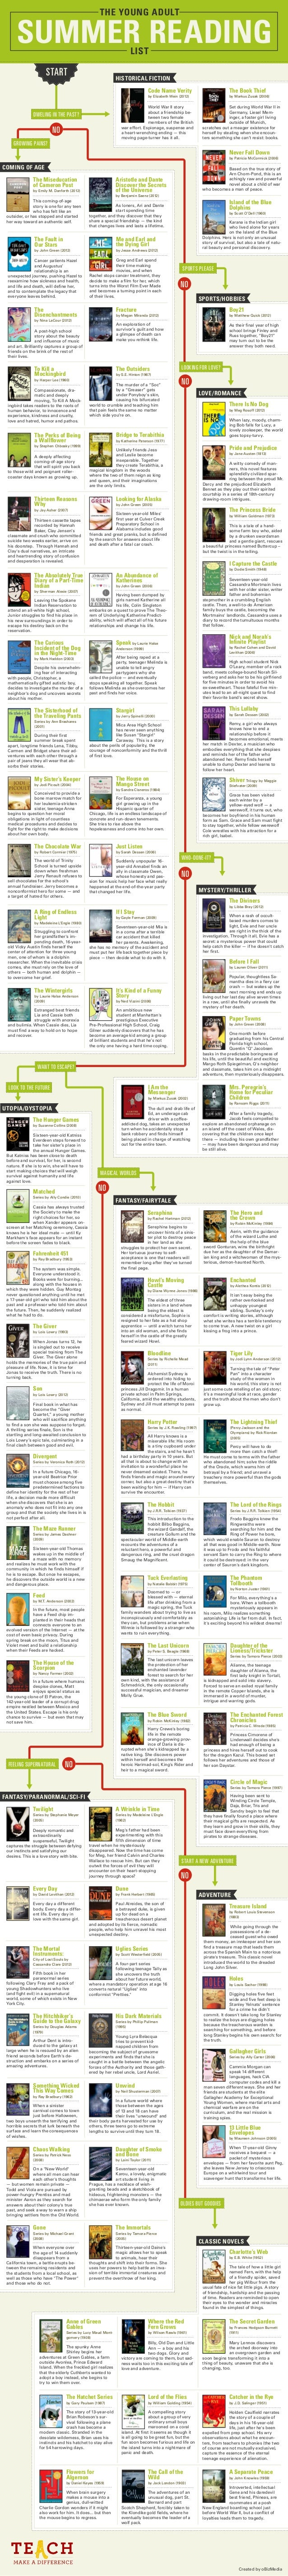 THE YOUNG ADULT  SUMMER READING LIST  START  HISTORICAL FICTION Code Name Verity  The Book Thief  by Elizabeth Wein (2012)...